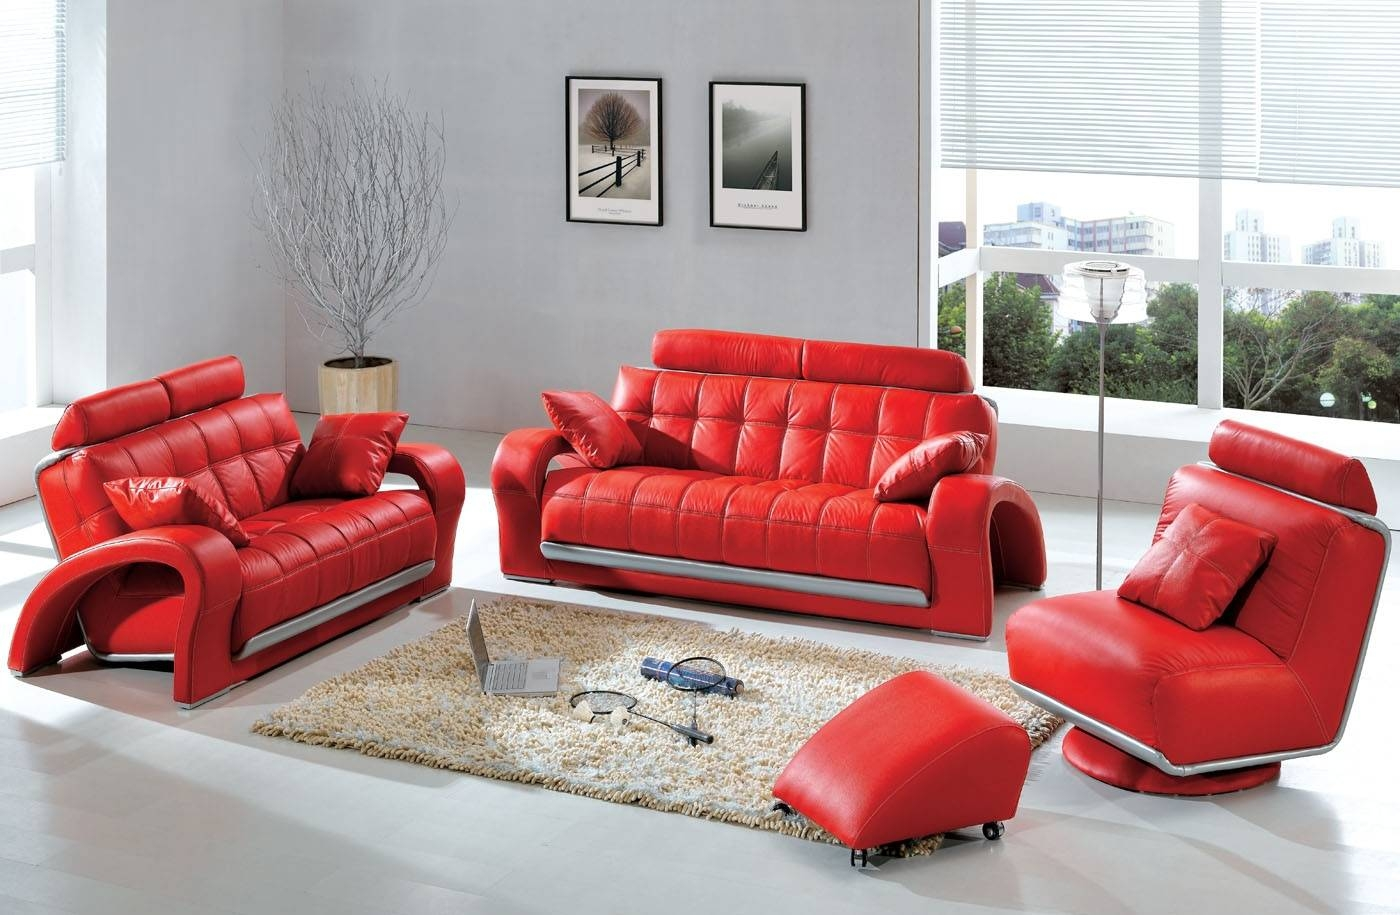 Sectional Couches With Recliners | Tehranmix Decoration with regard to Red Sofas And Chairs (Image 23 of 30)